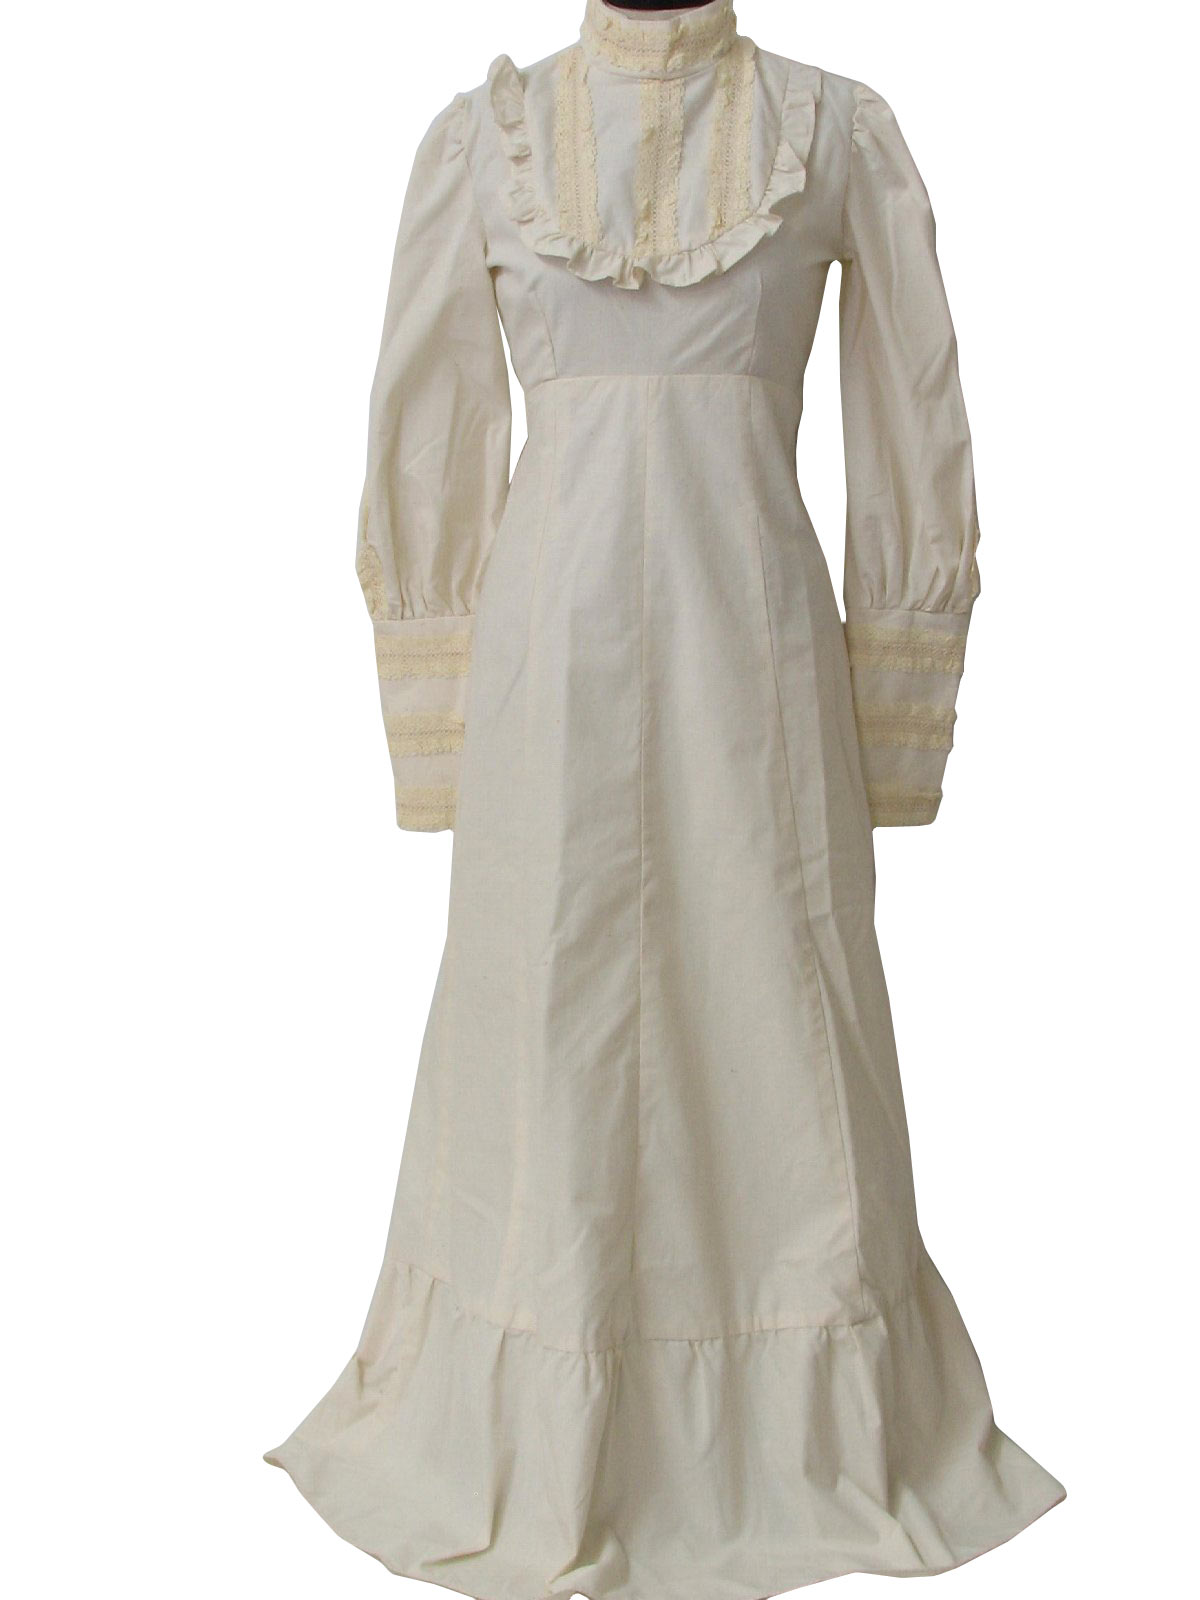 the gallery for gt vintage dresses 1800s